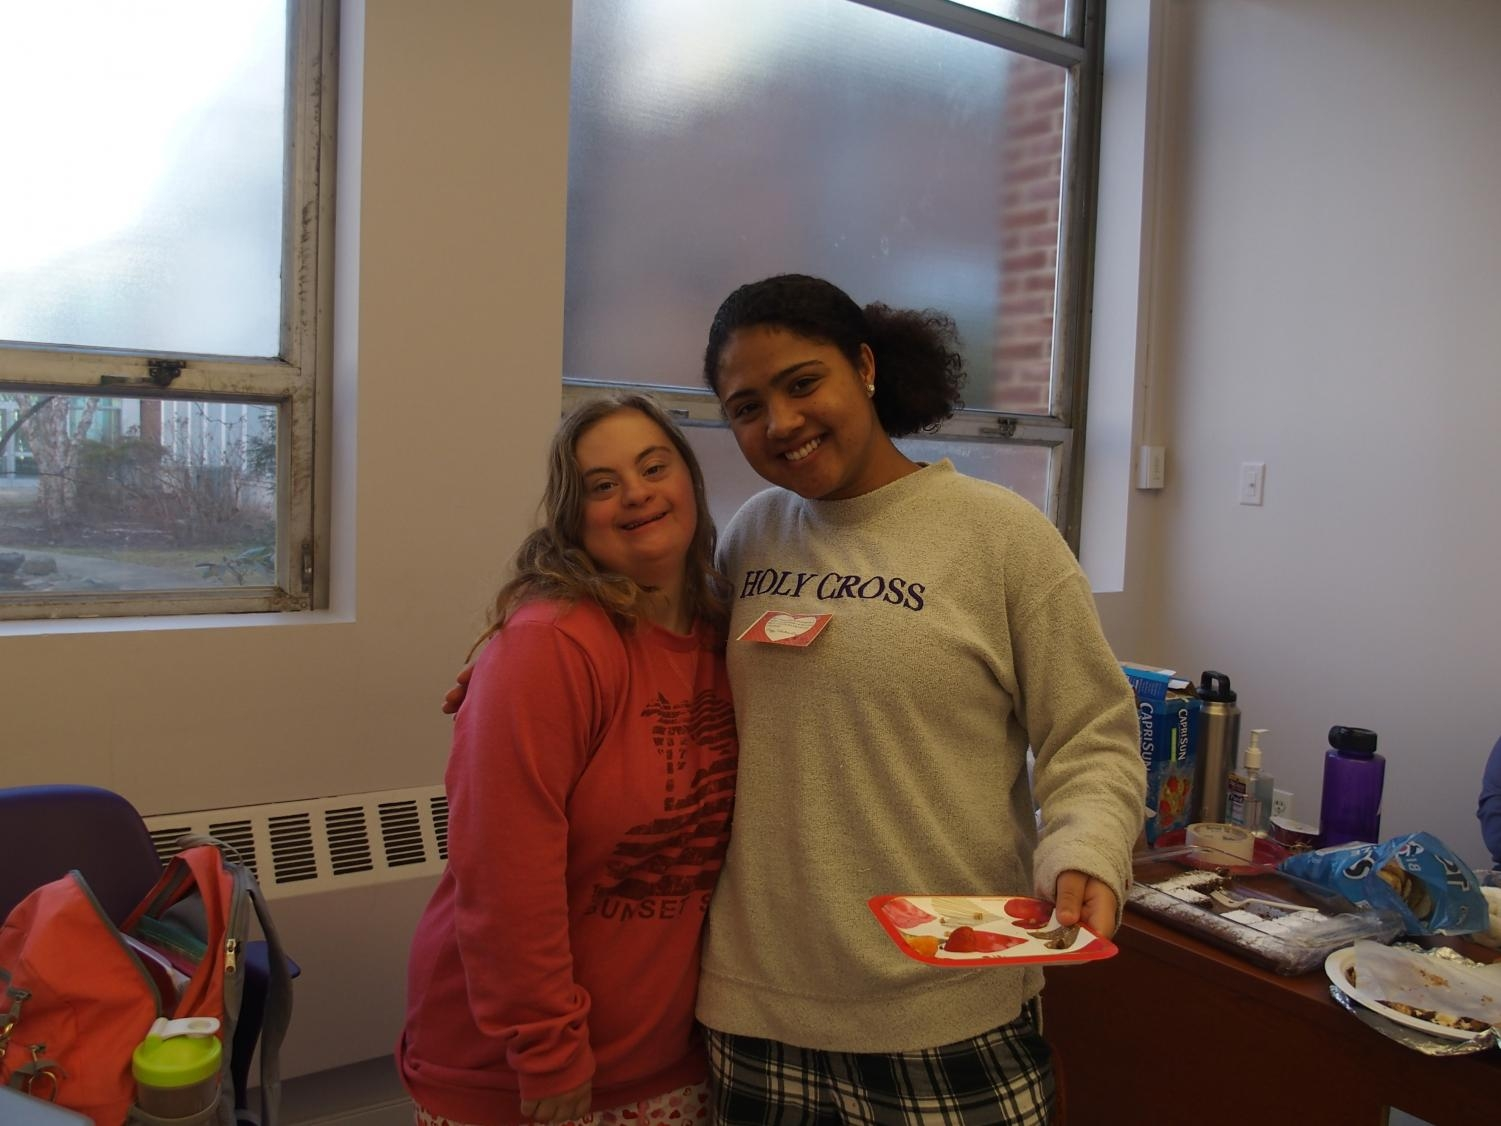 Juniors Mckhaye O'Boyle and Rosie Pollak in their Valentine's Day party.